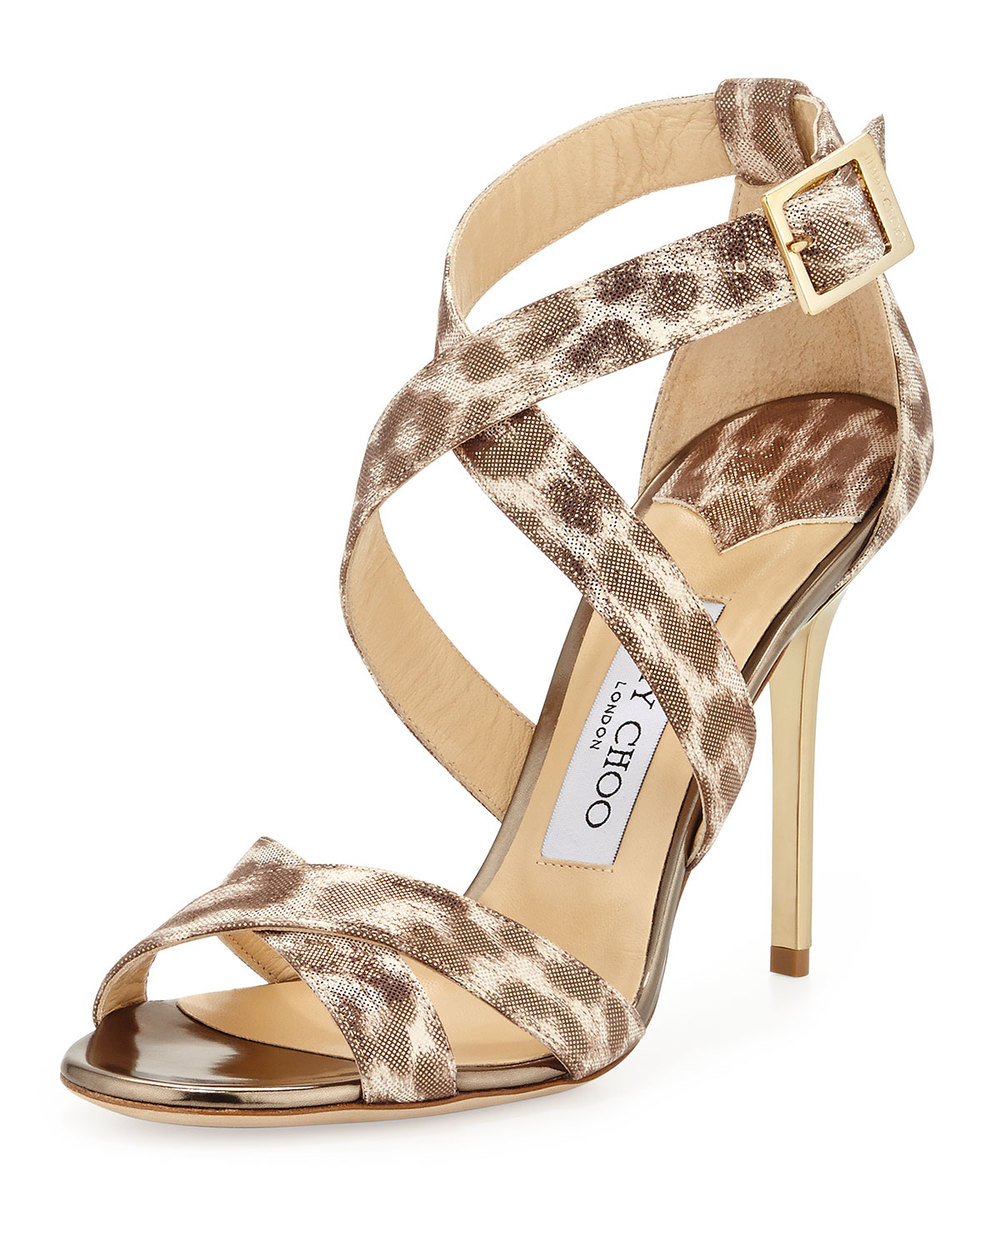 JIMMY CHOO LOTTIE LEOPARD-PRINT METALLIC SANDAL, GOLD was $695 now $388.80